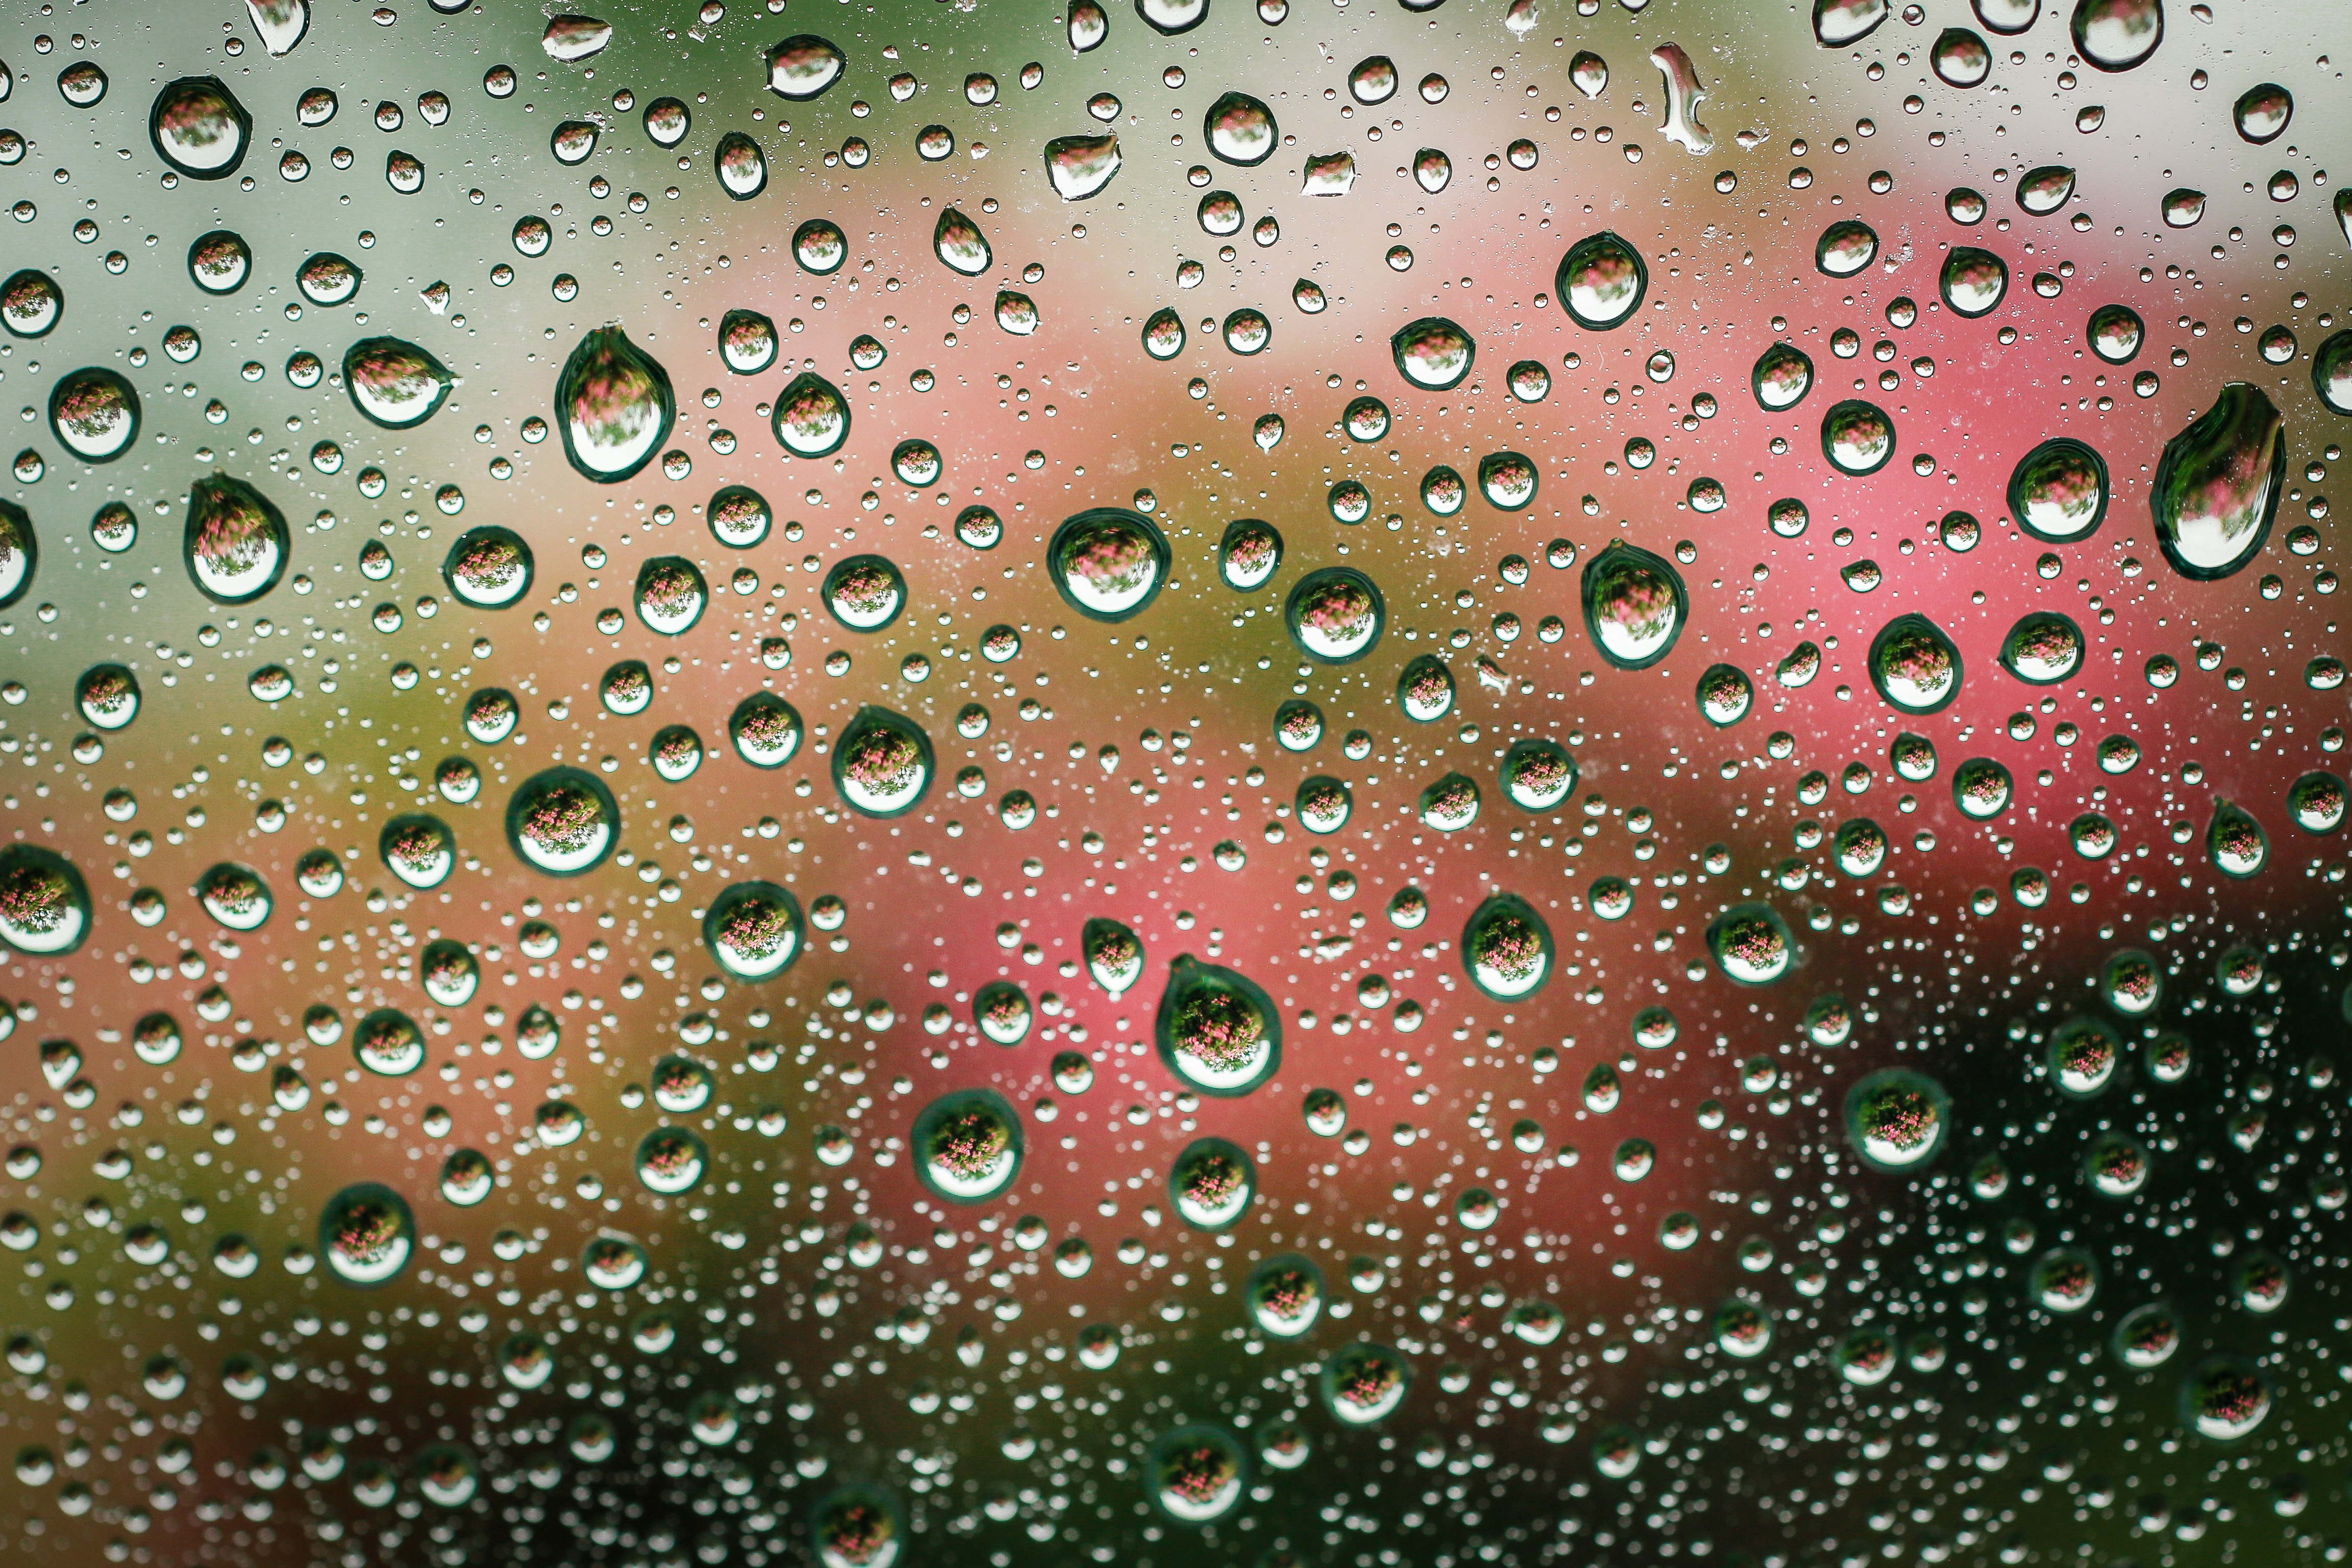 Seeing and feeling water drops on glass.